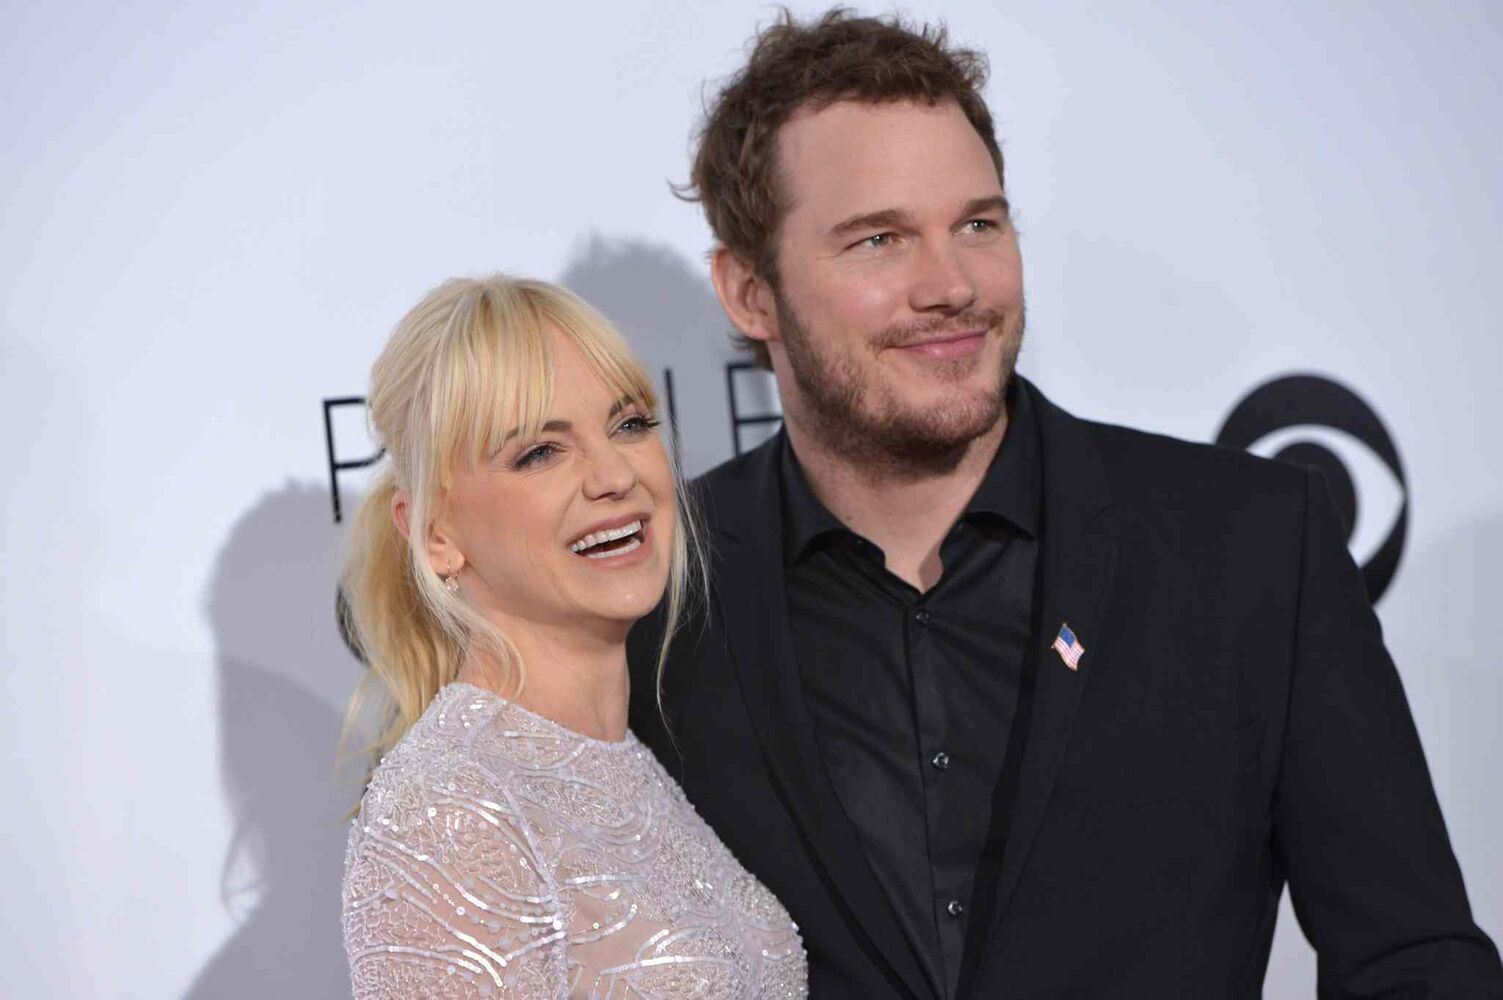 Actors Anna Faris, left, and Chris Pratt arrive at the 40th annual People's Choice Awards at Los Angeles' Nokia Theatre Wednesday. (John Shearer / Invision/ The Associated Press)